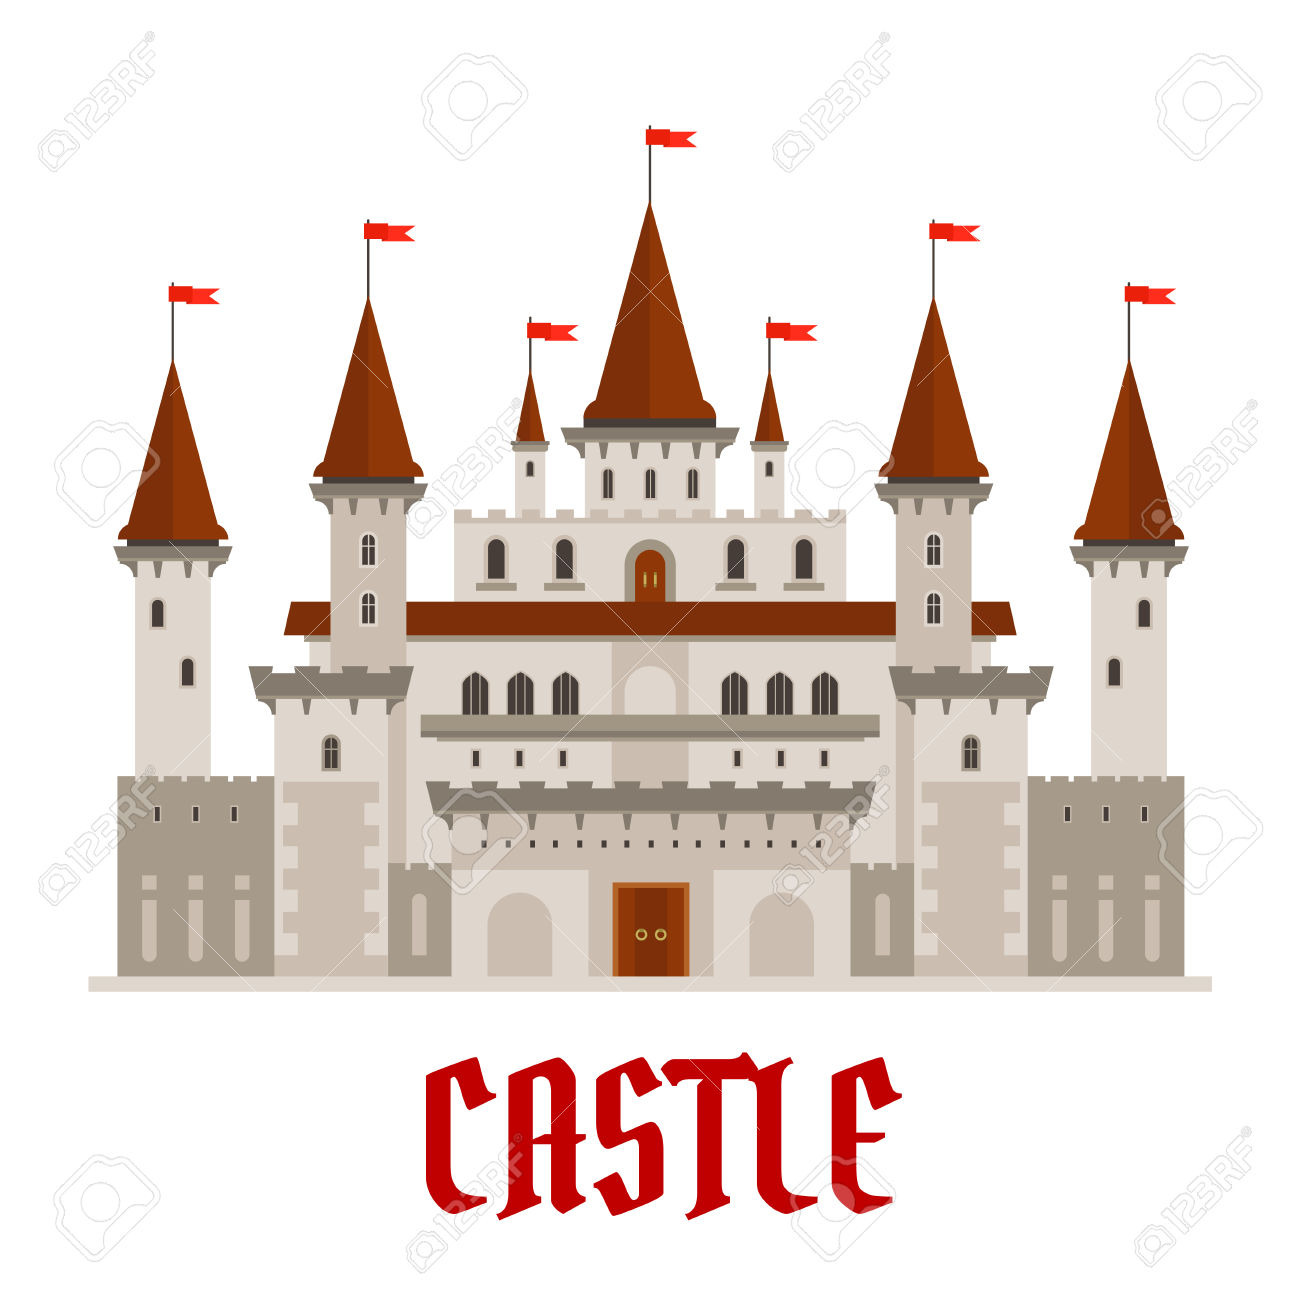 Romantic Medieval Castle Building With Gray Stone Facade In Gothic.